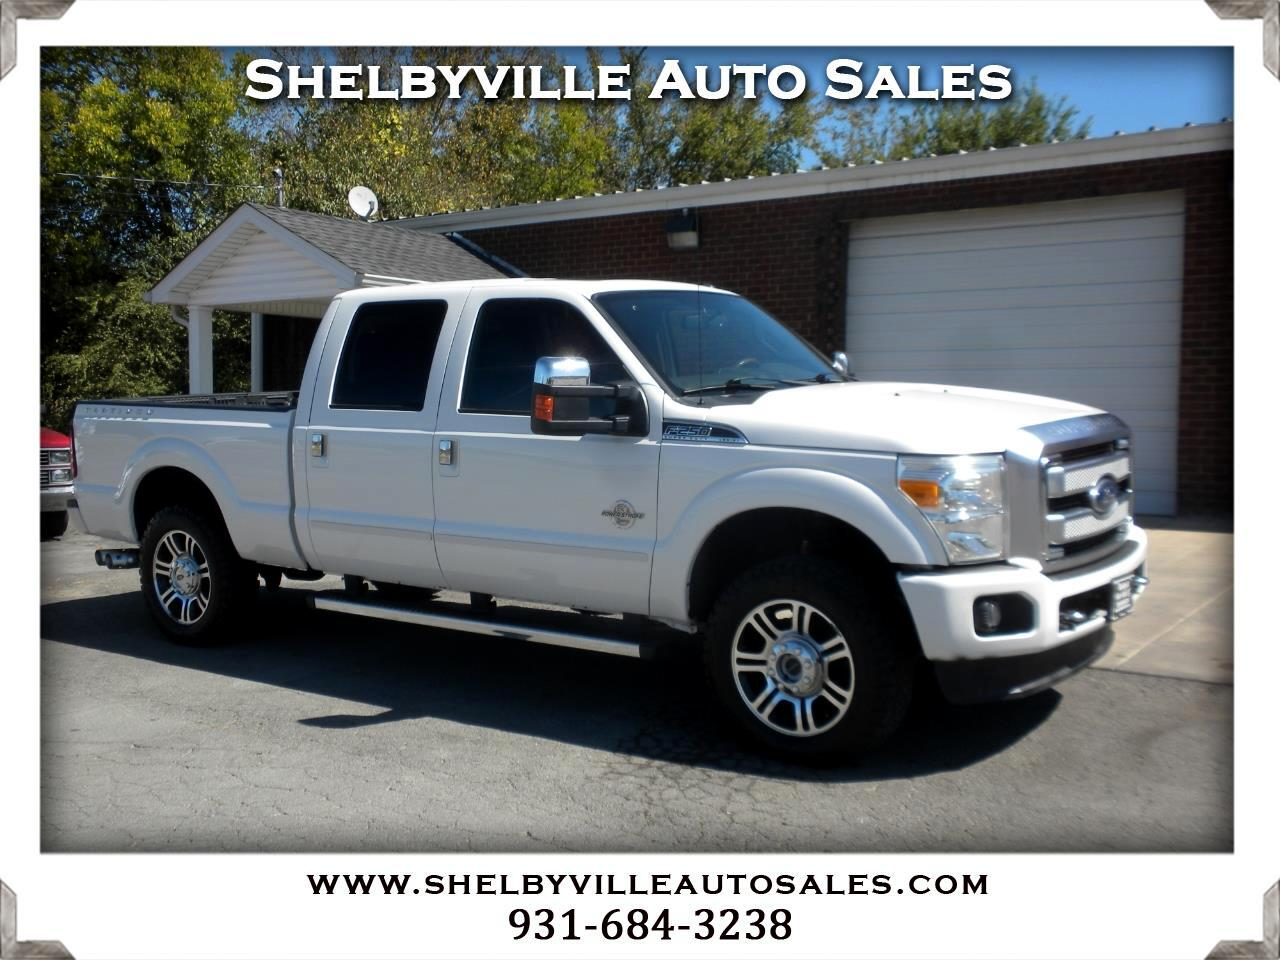 2013 Ford Super Duty F-250 SRW 4X4 Crew Cab Platinum